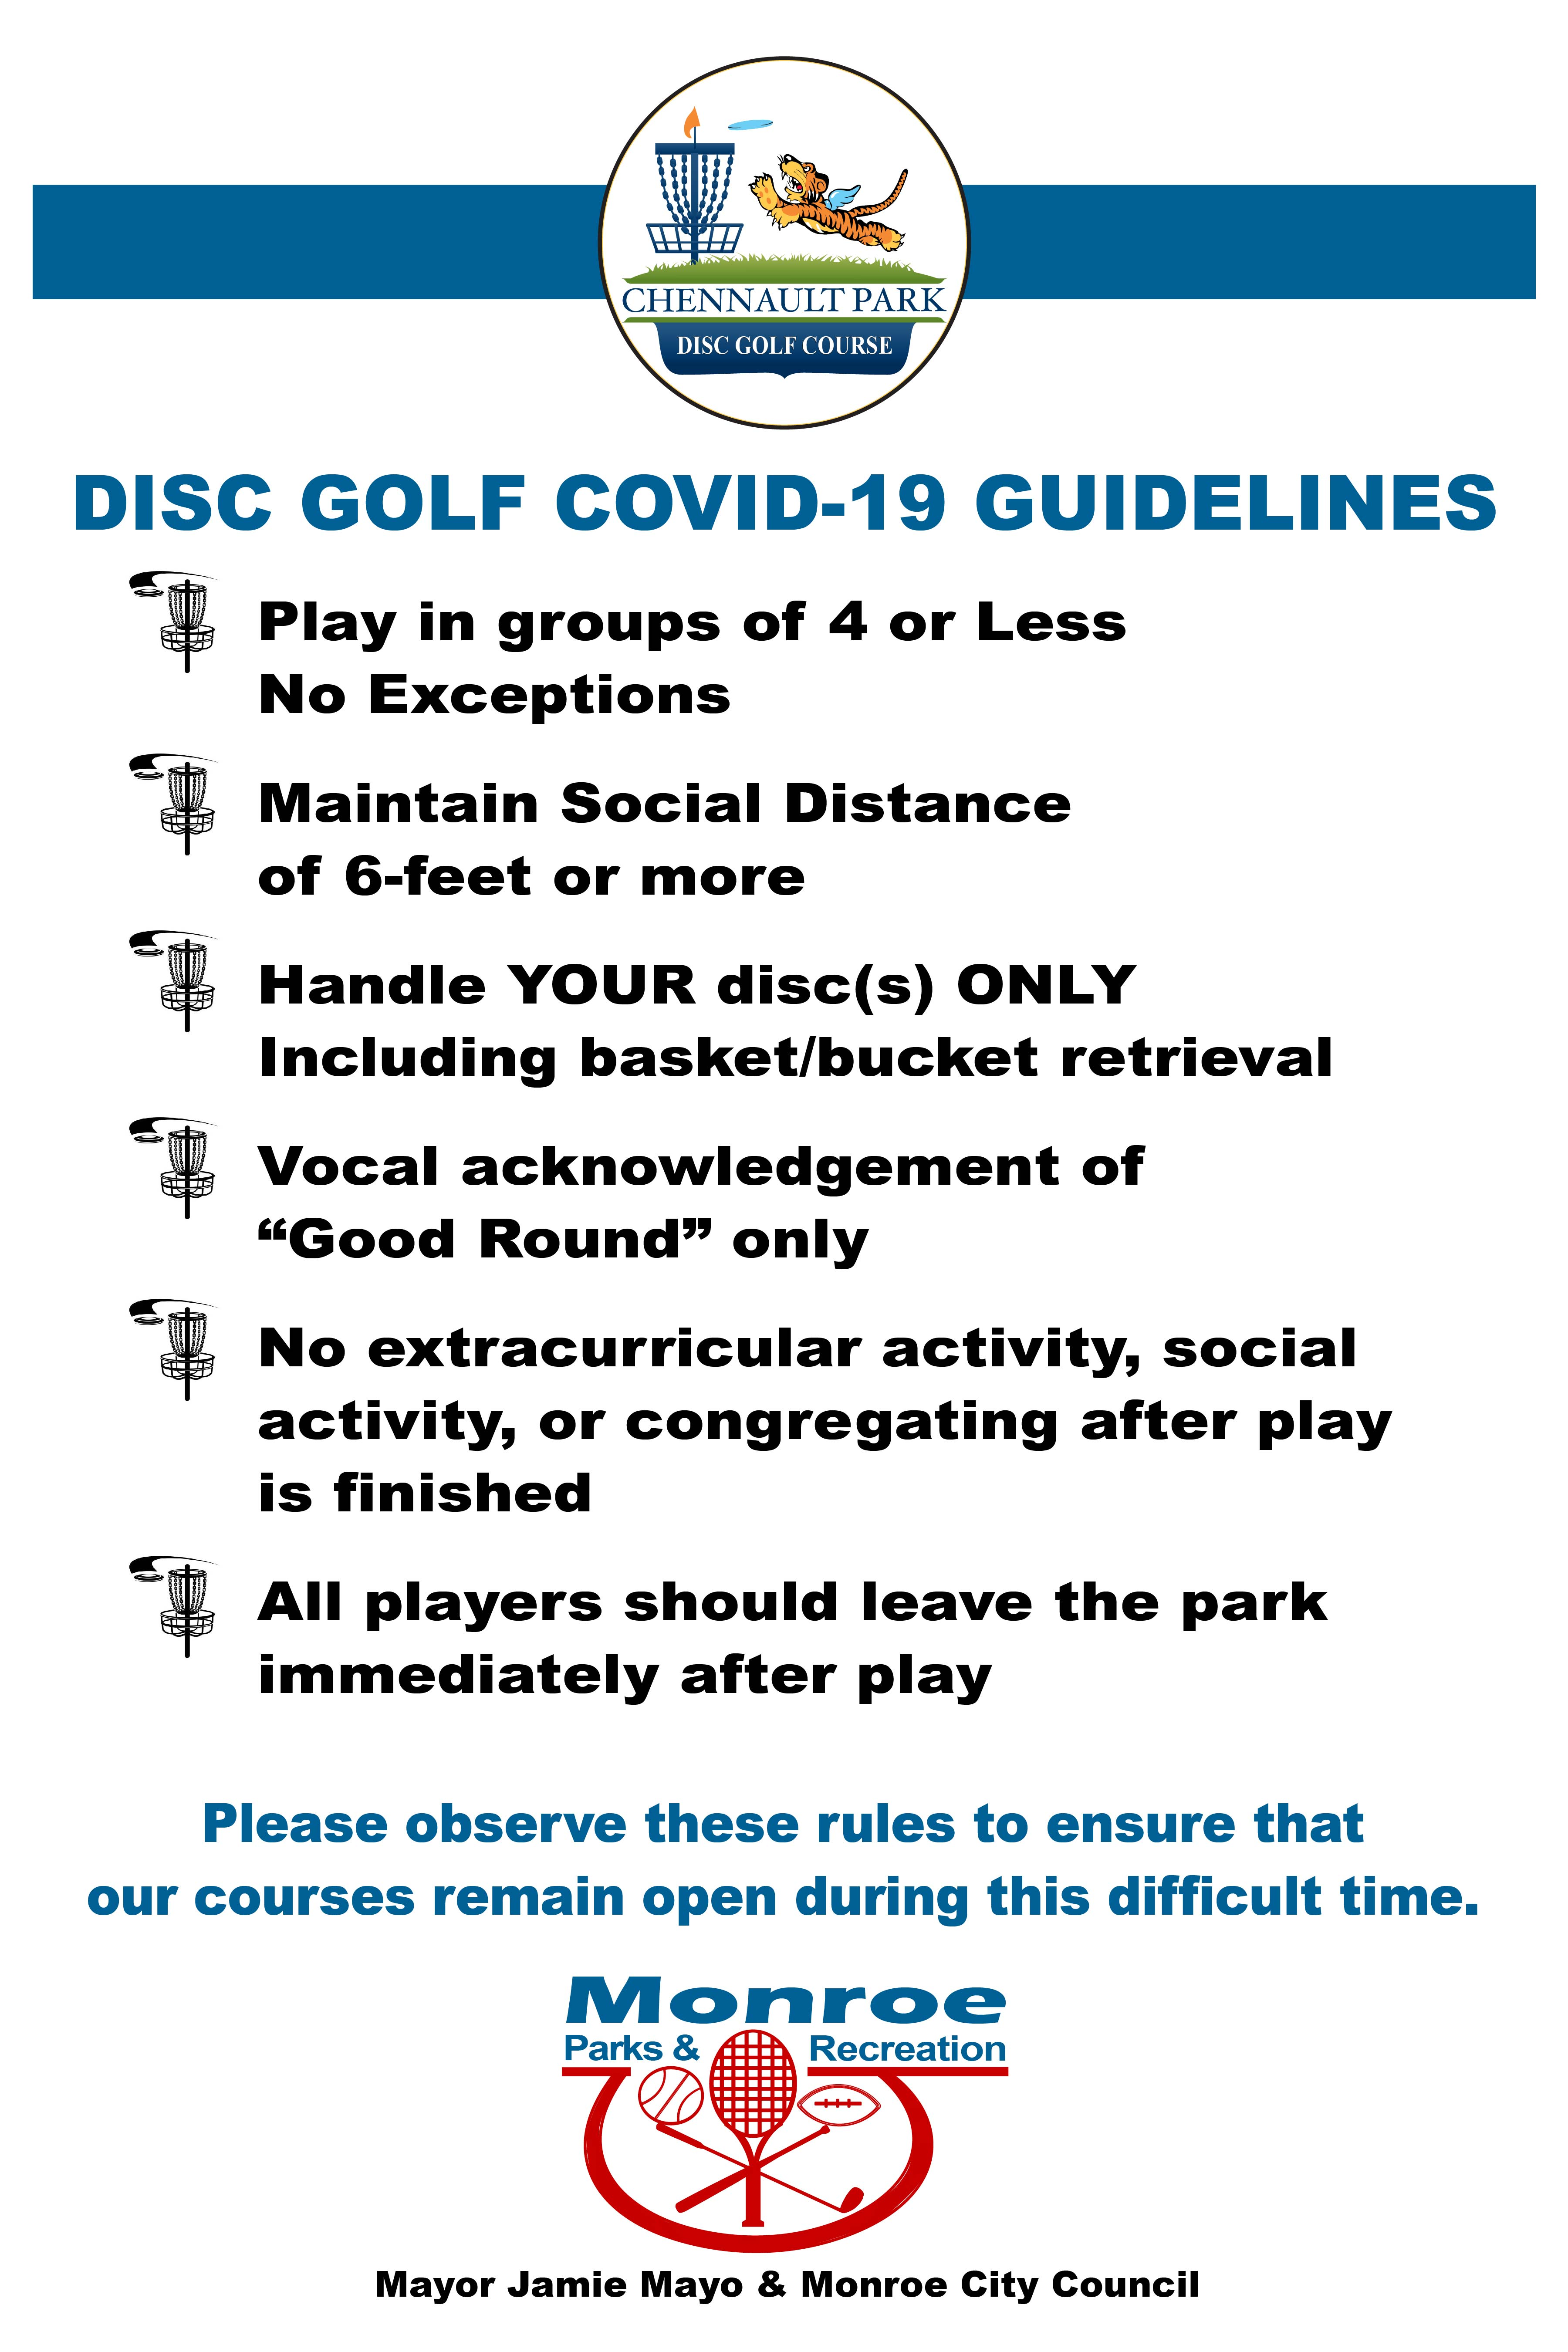 Phase 1 - Disc Golf Rules